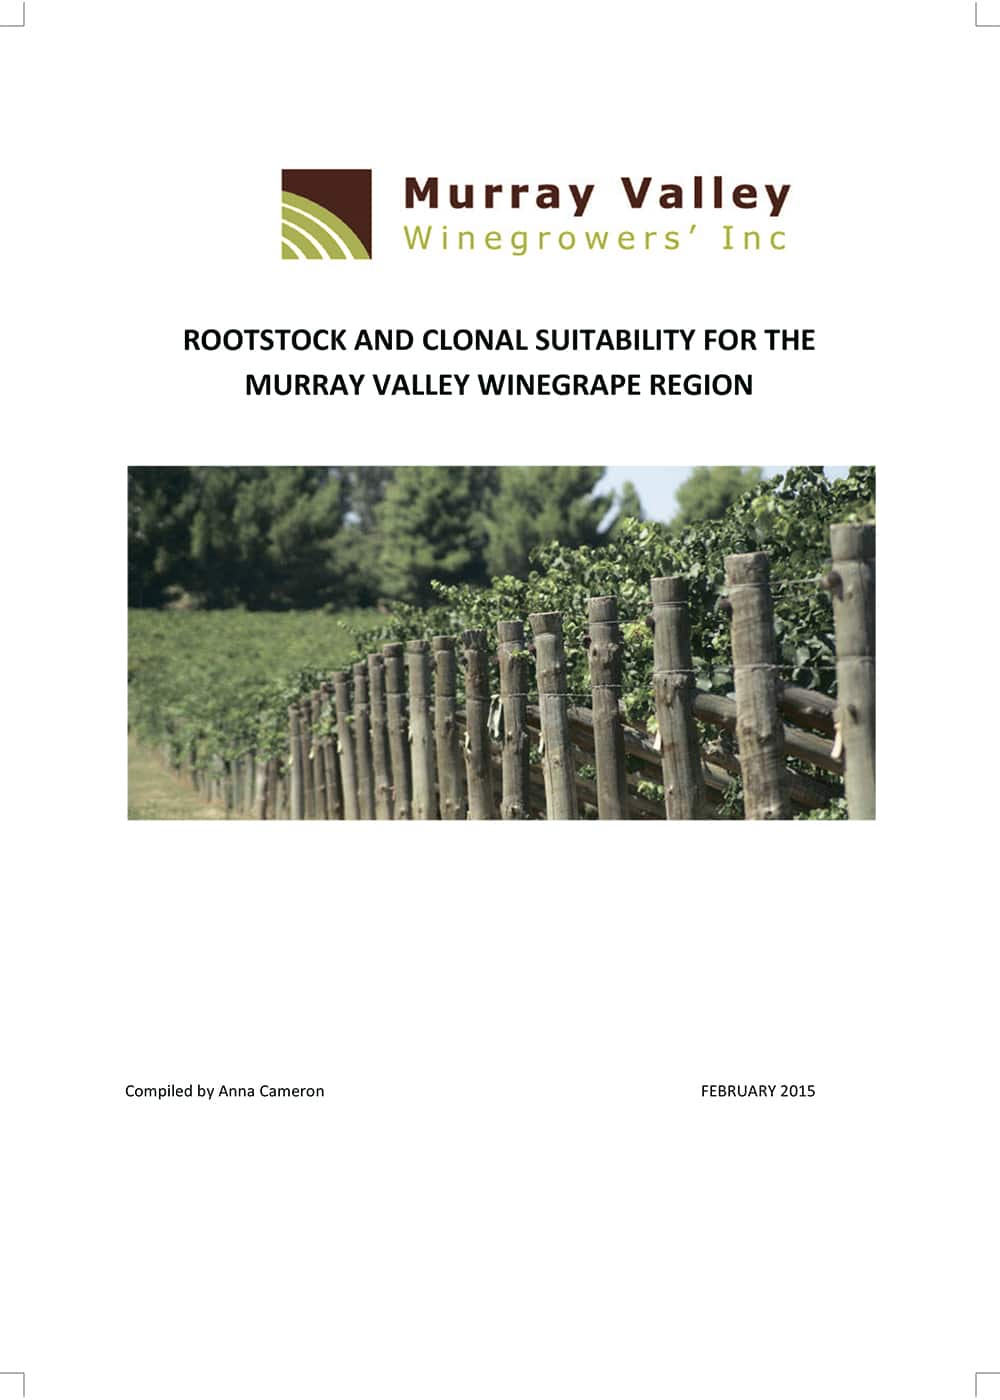 Rootstock & Clonal Suitability for Murray Valley